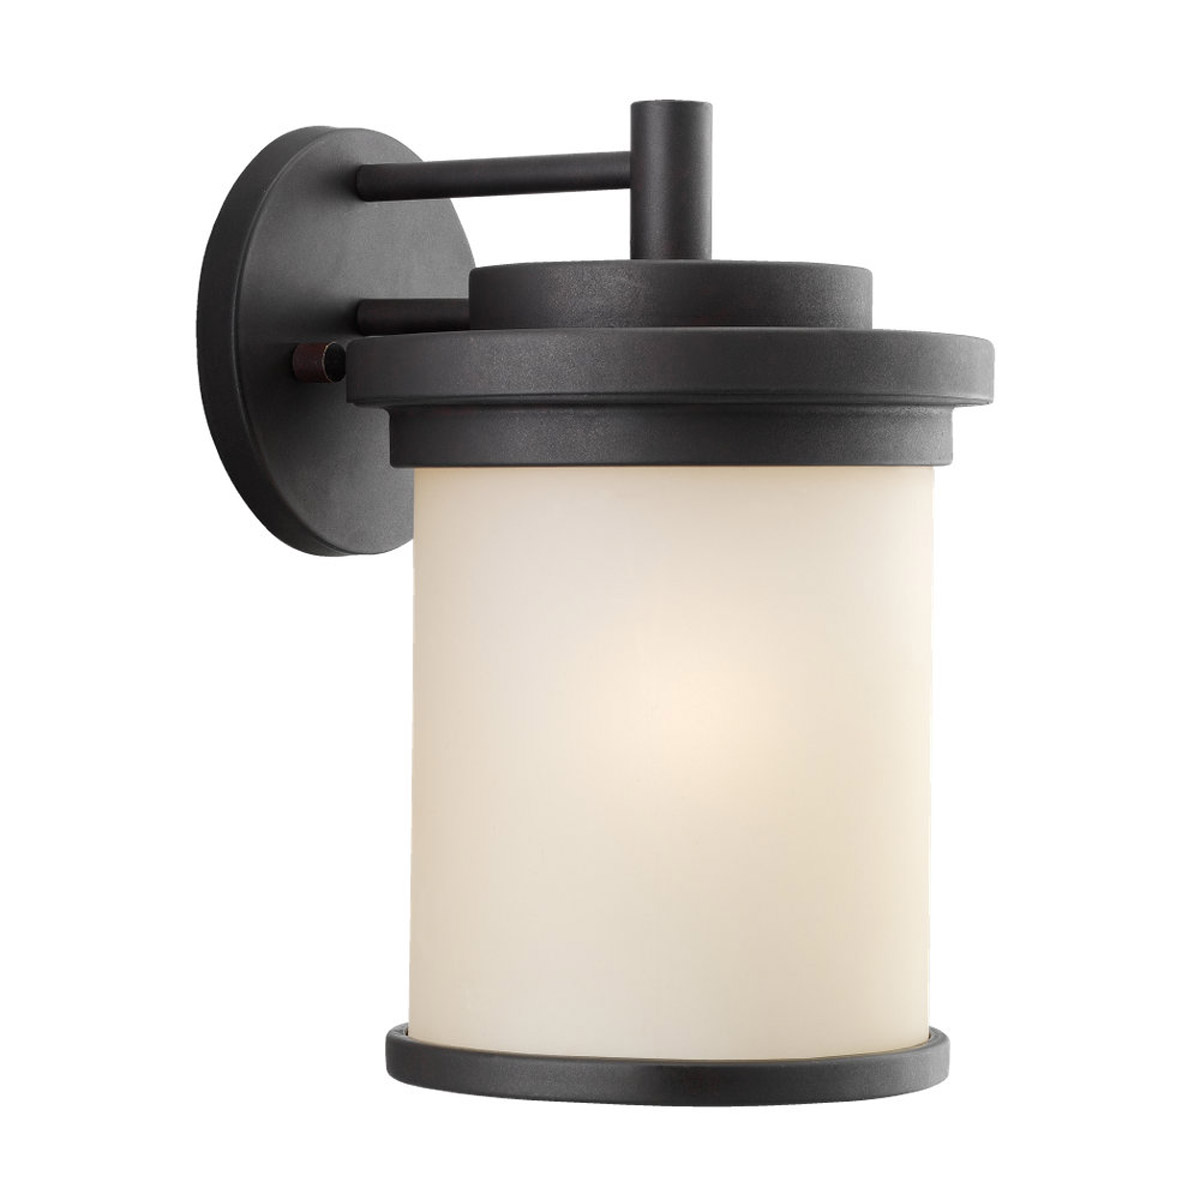 Sea Gull Lighting Winnetka 1 Light Outdoor Wall Lantern in Misted Bronze 88661-814 photo